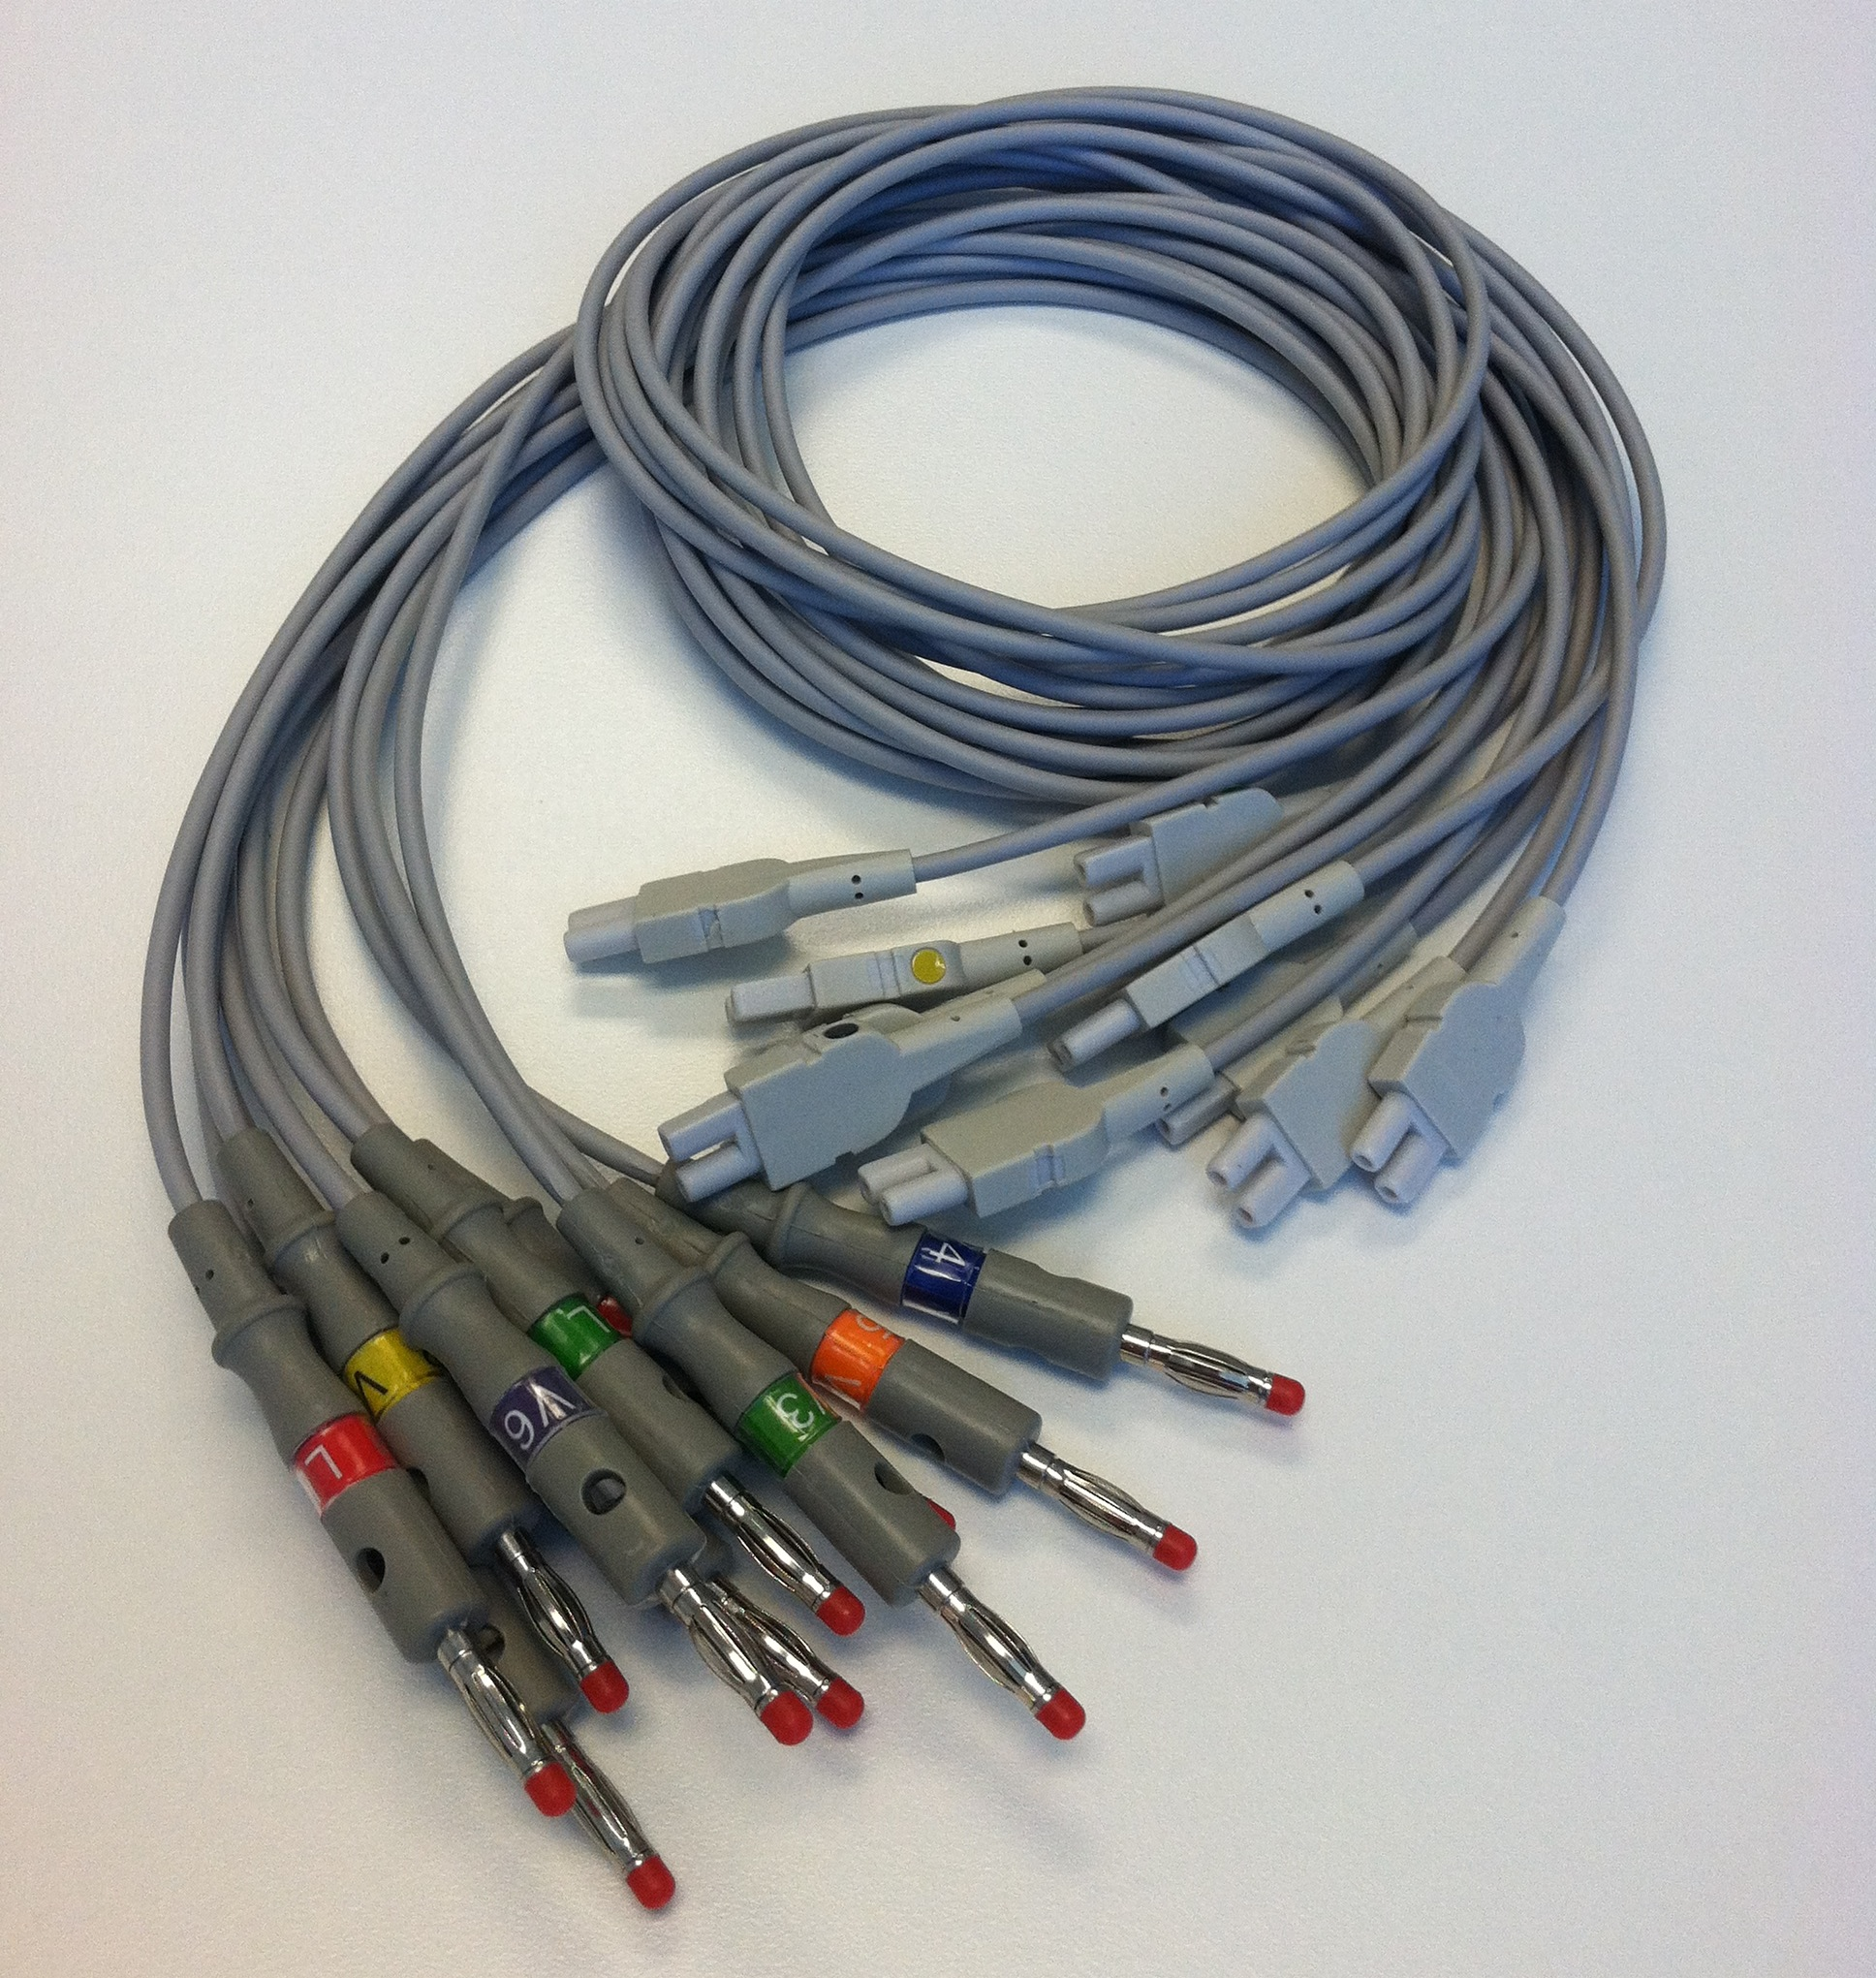 GE Mac 5000 Limb Lead Cable